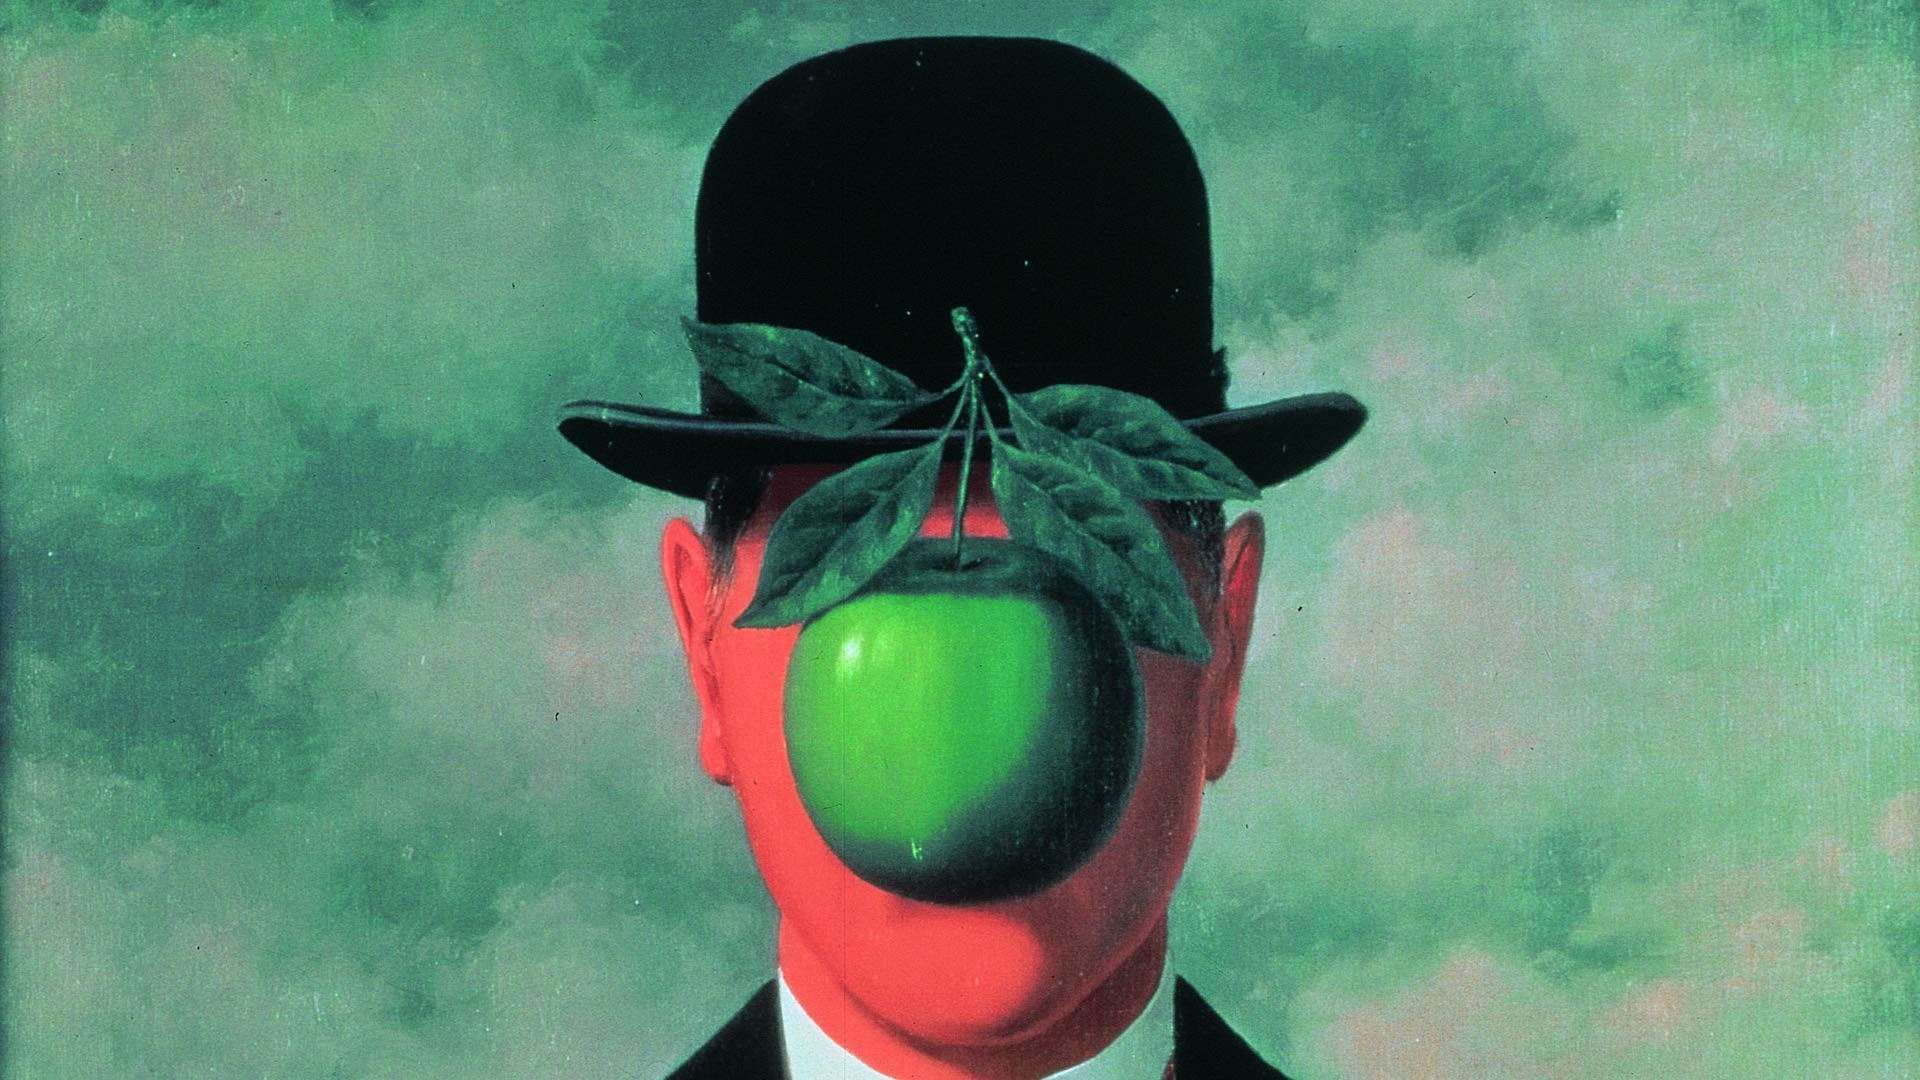 PERVADED BY THE SPIRIT OF MAGRITTE""